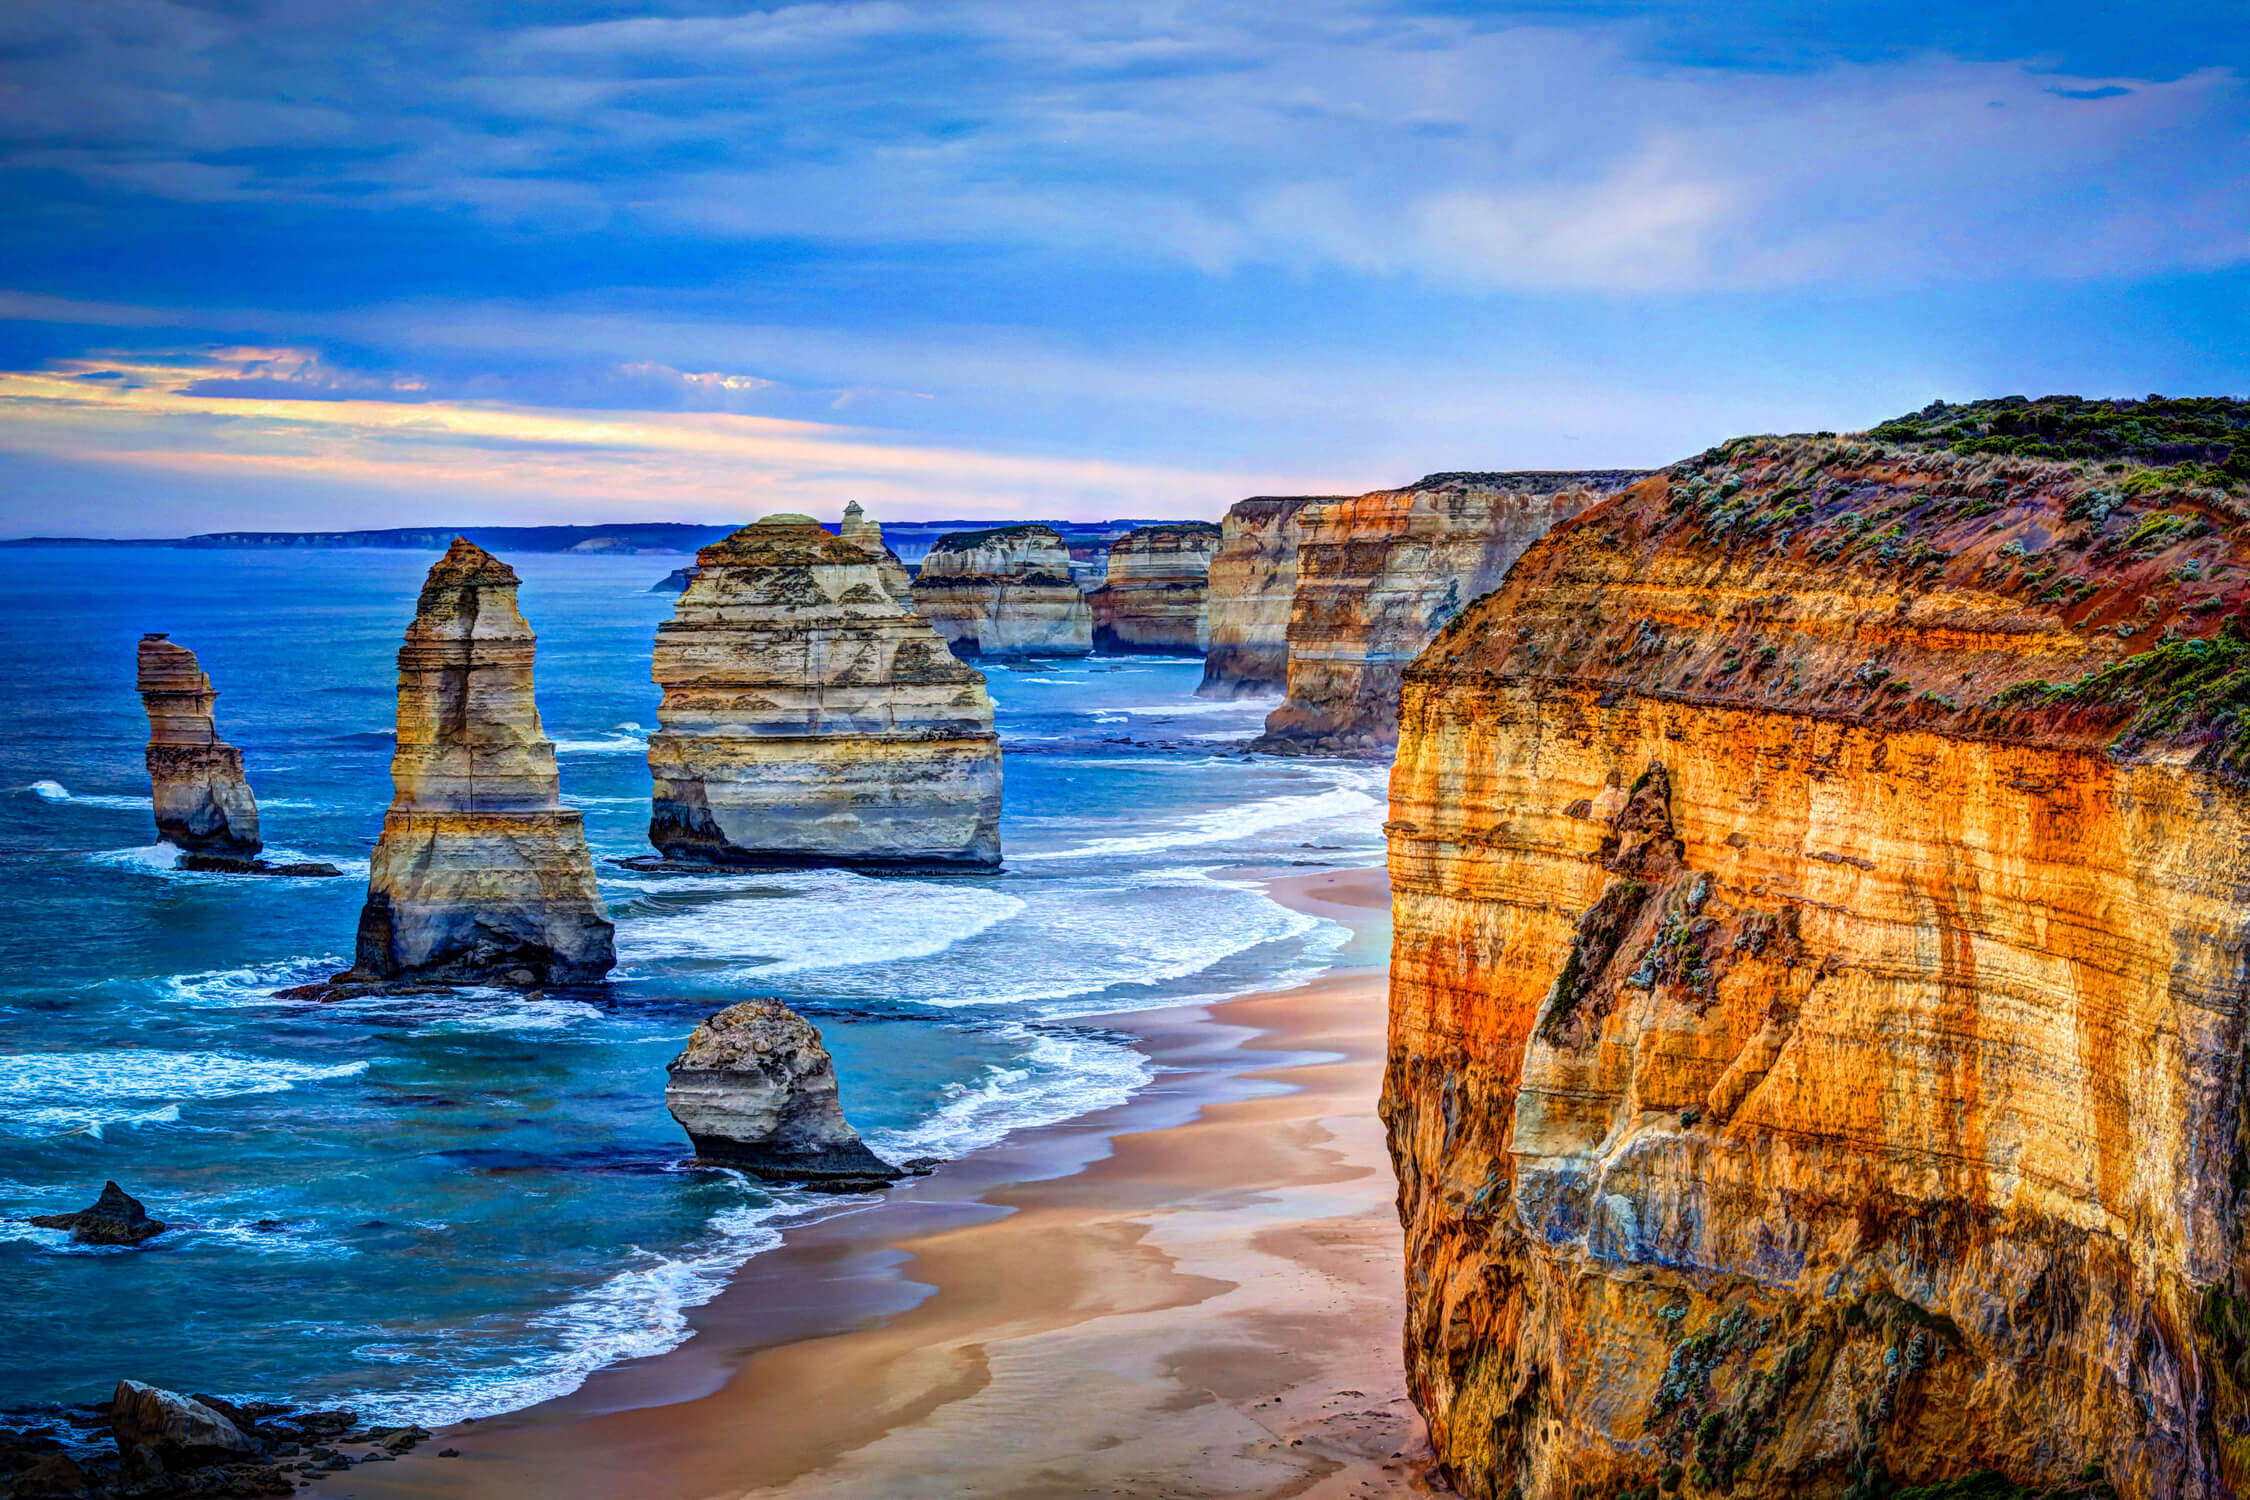 blue waters at Apostles at Great Ocean Road Melbourne